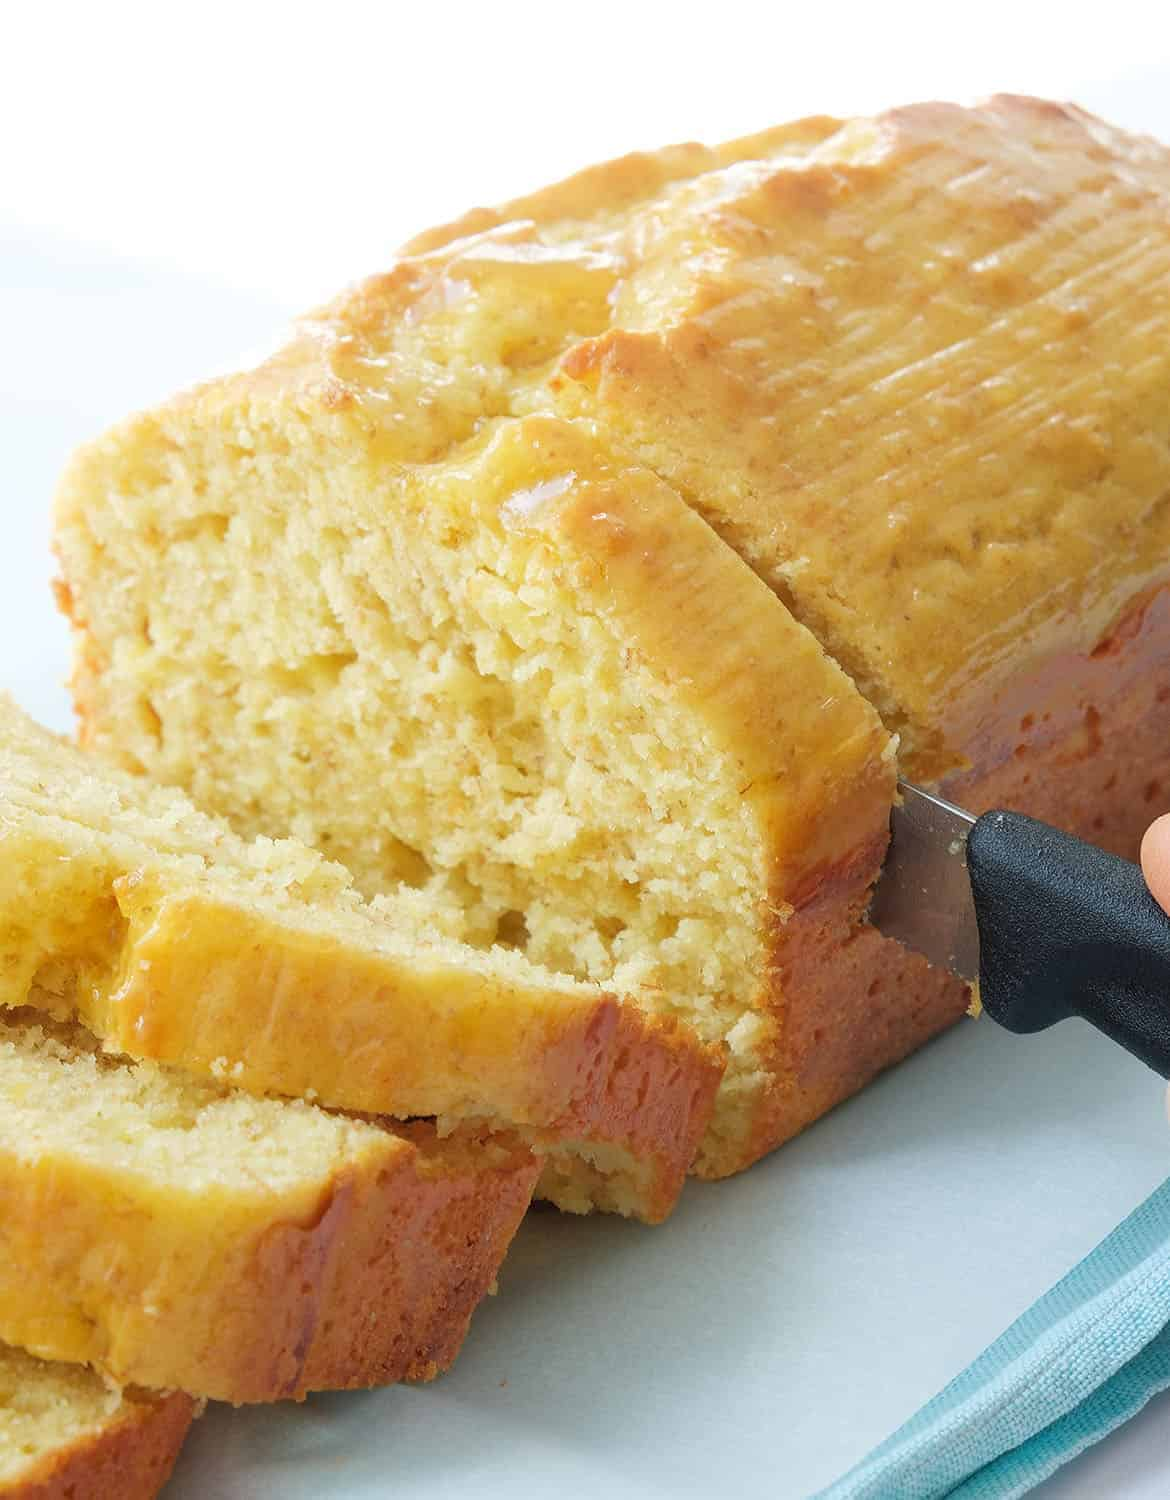 A knife cutting a healthy yogurt cake into slices over a white background.